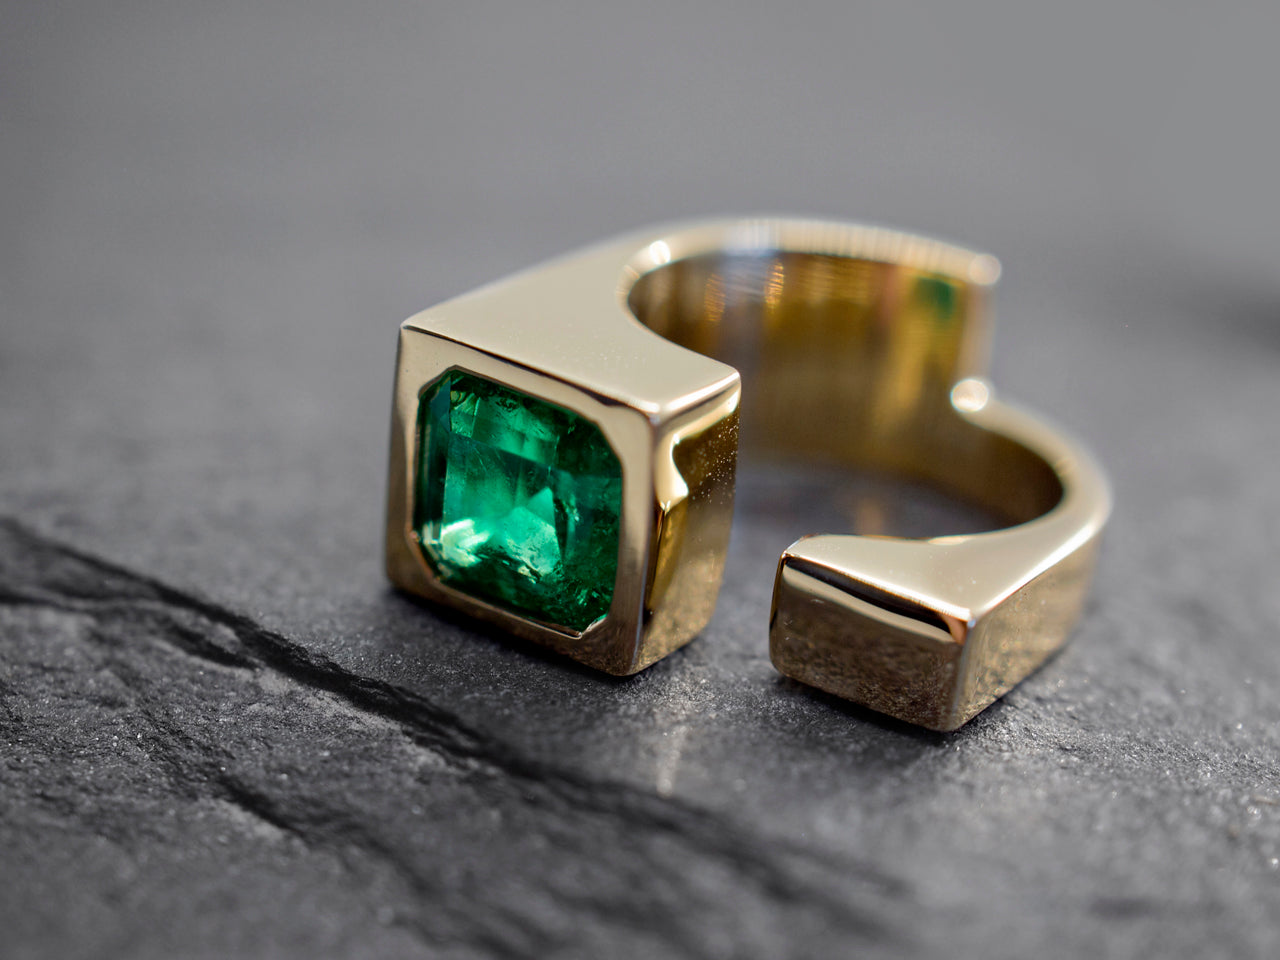 18k yellow gold with emerald